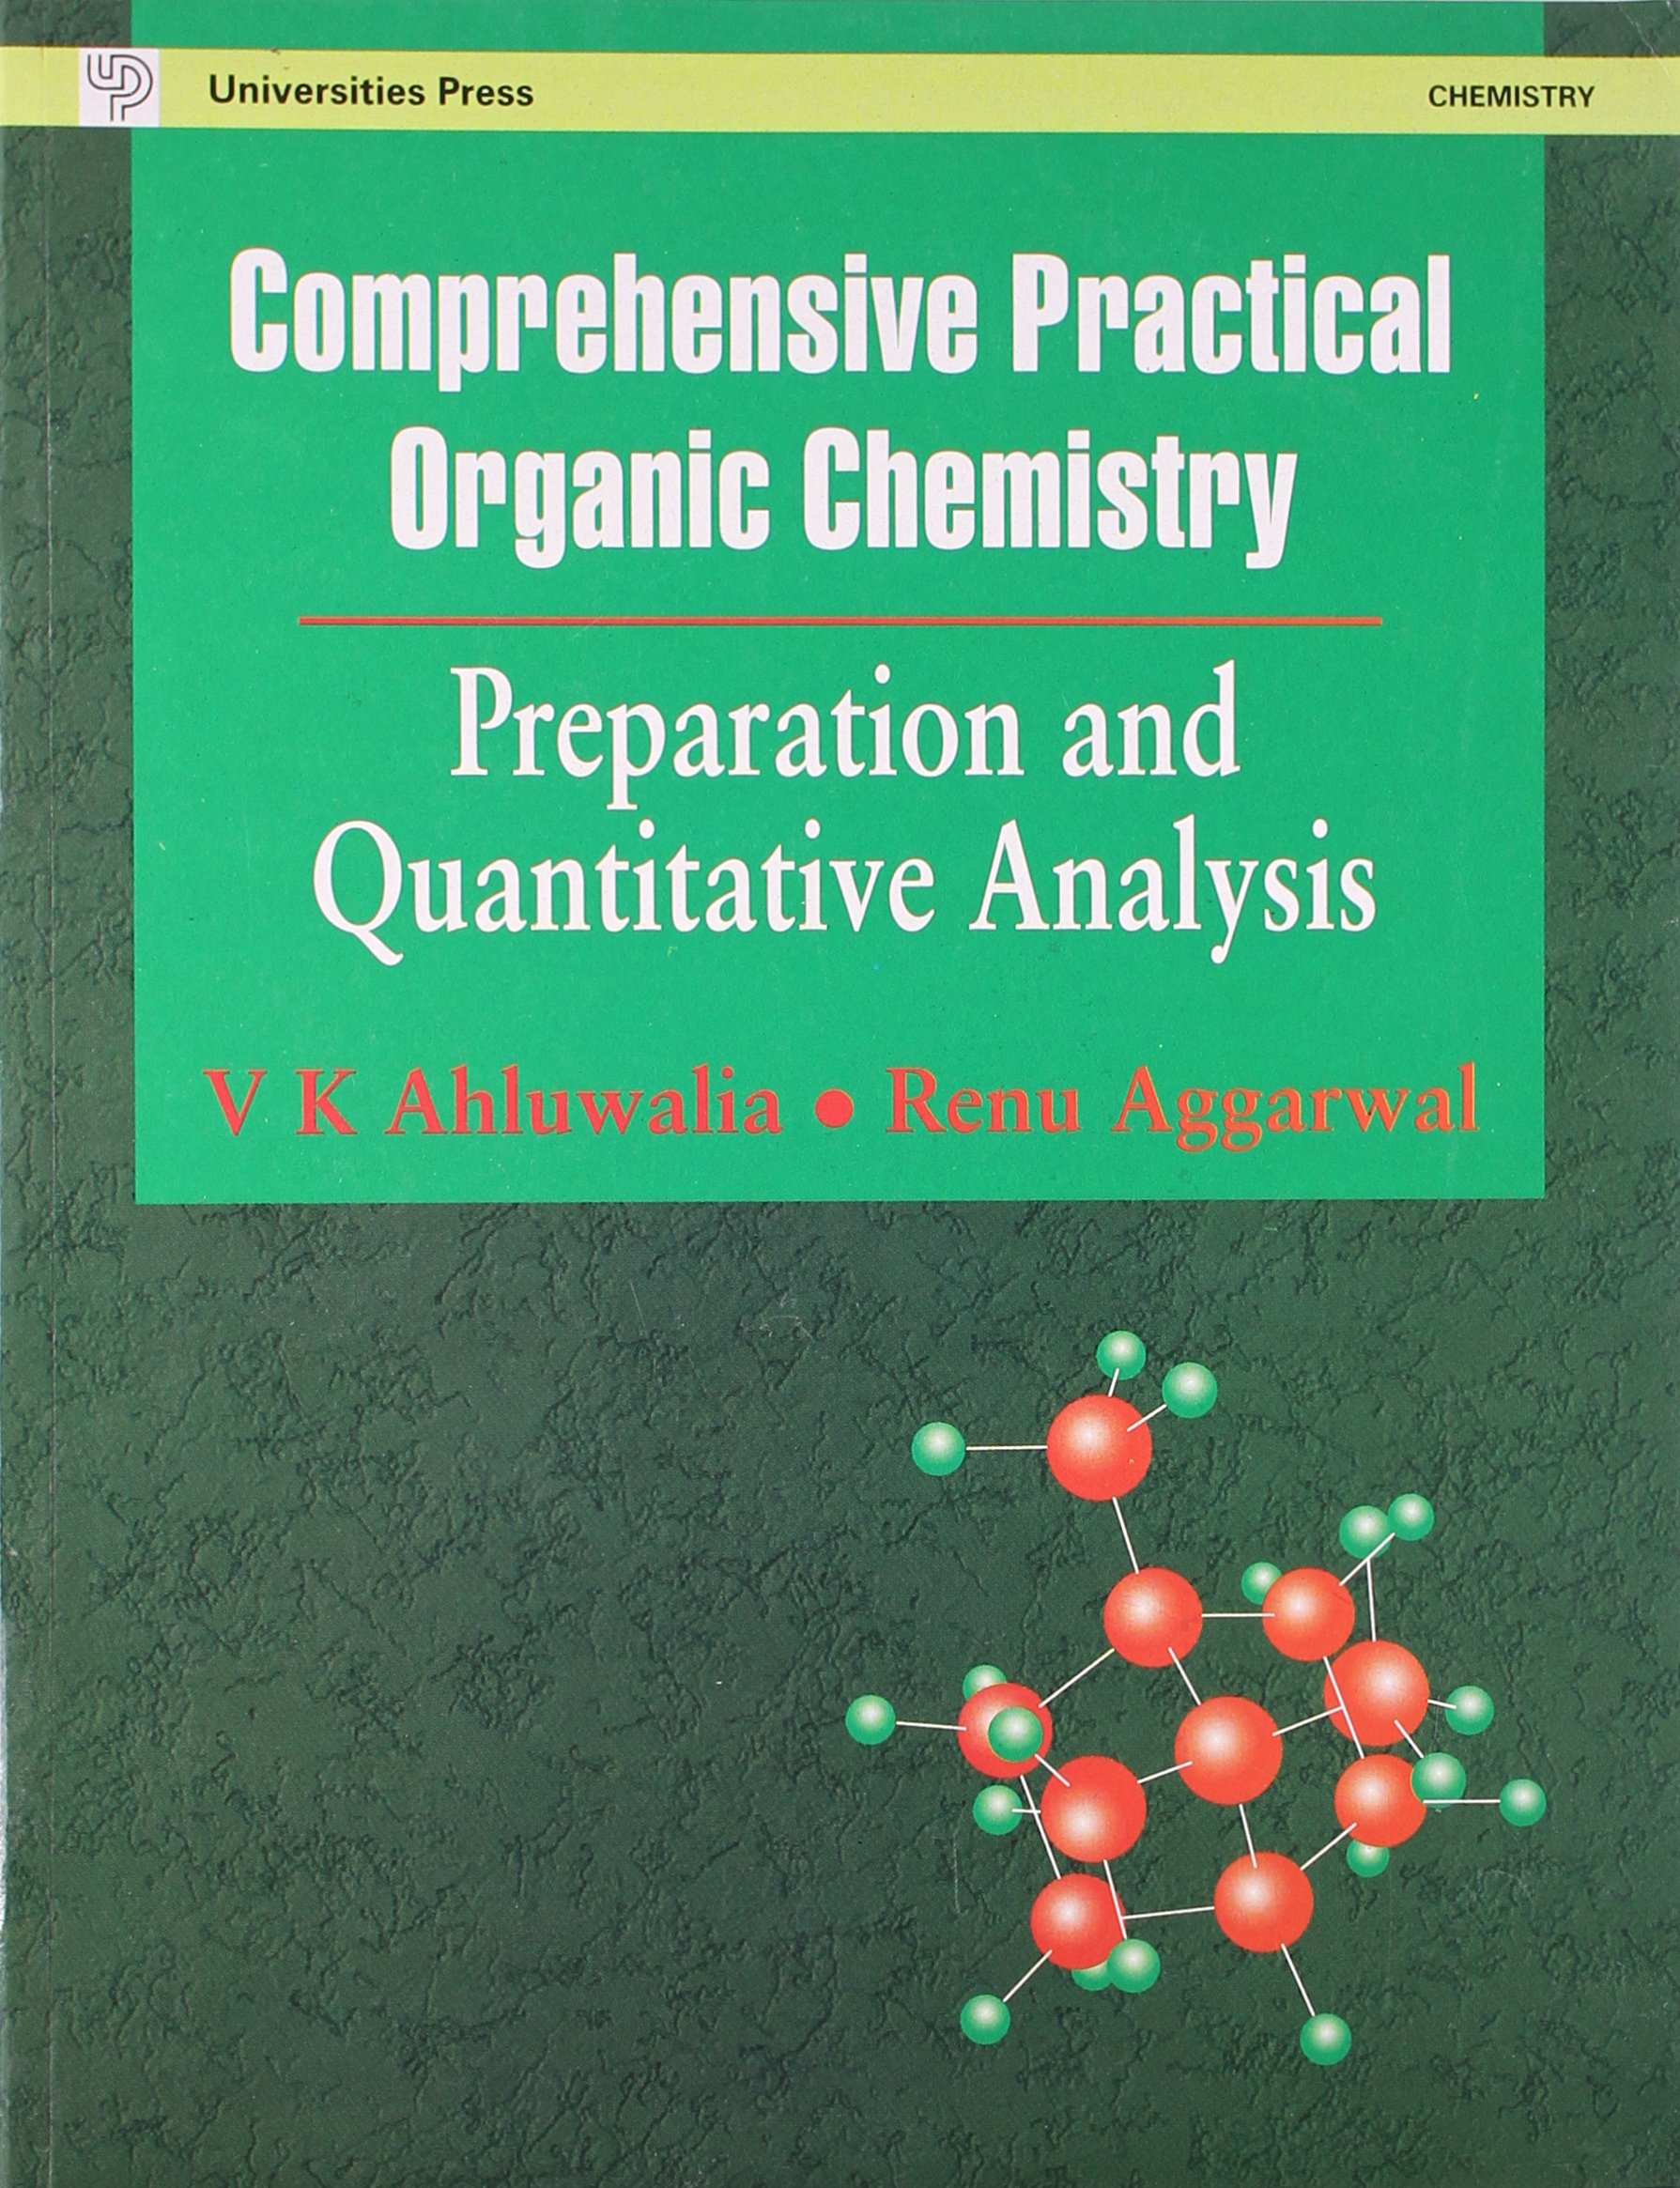 Comprehensive Practical Organic Chemistry Preparation And Quantitative Analysis V K Ahluwalia Renu Aggarwal 9788173714757 Amazon Books